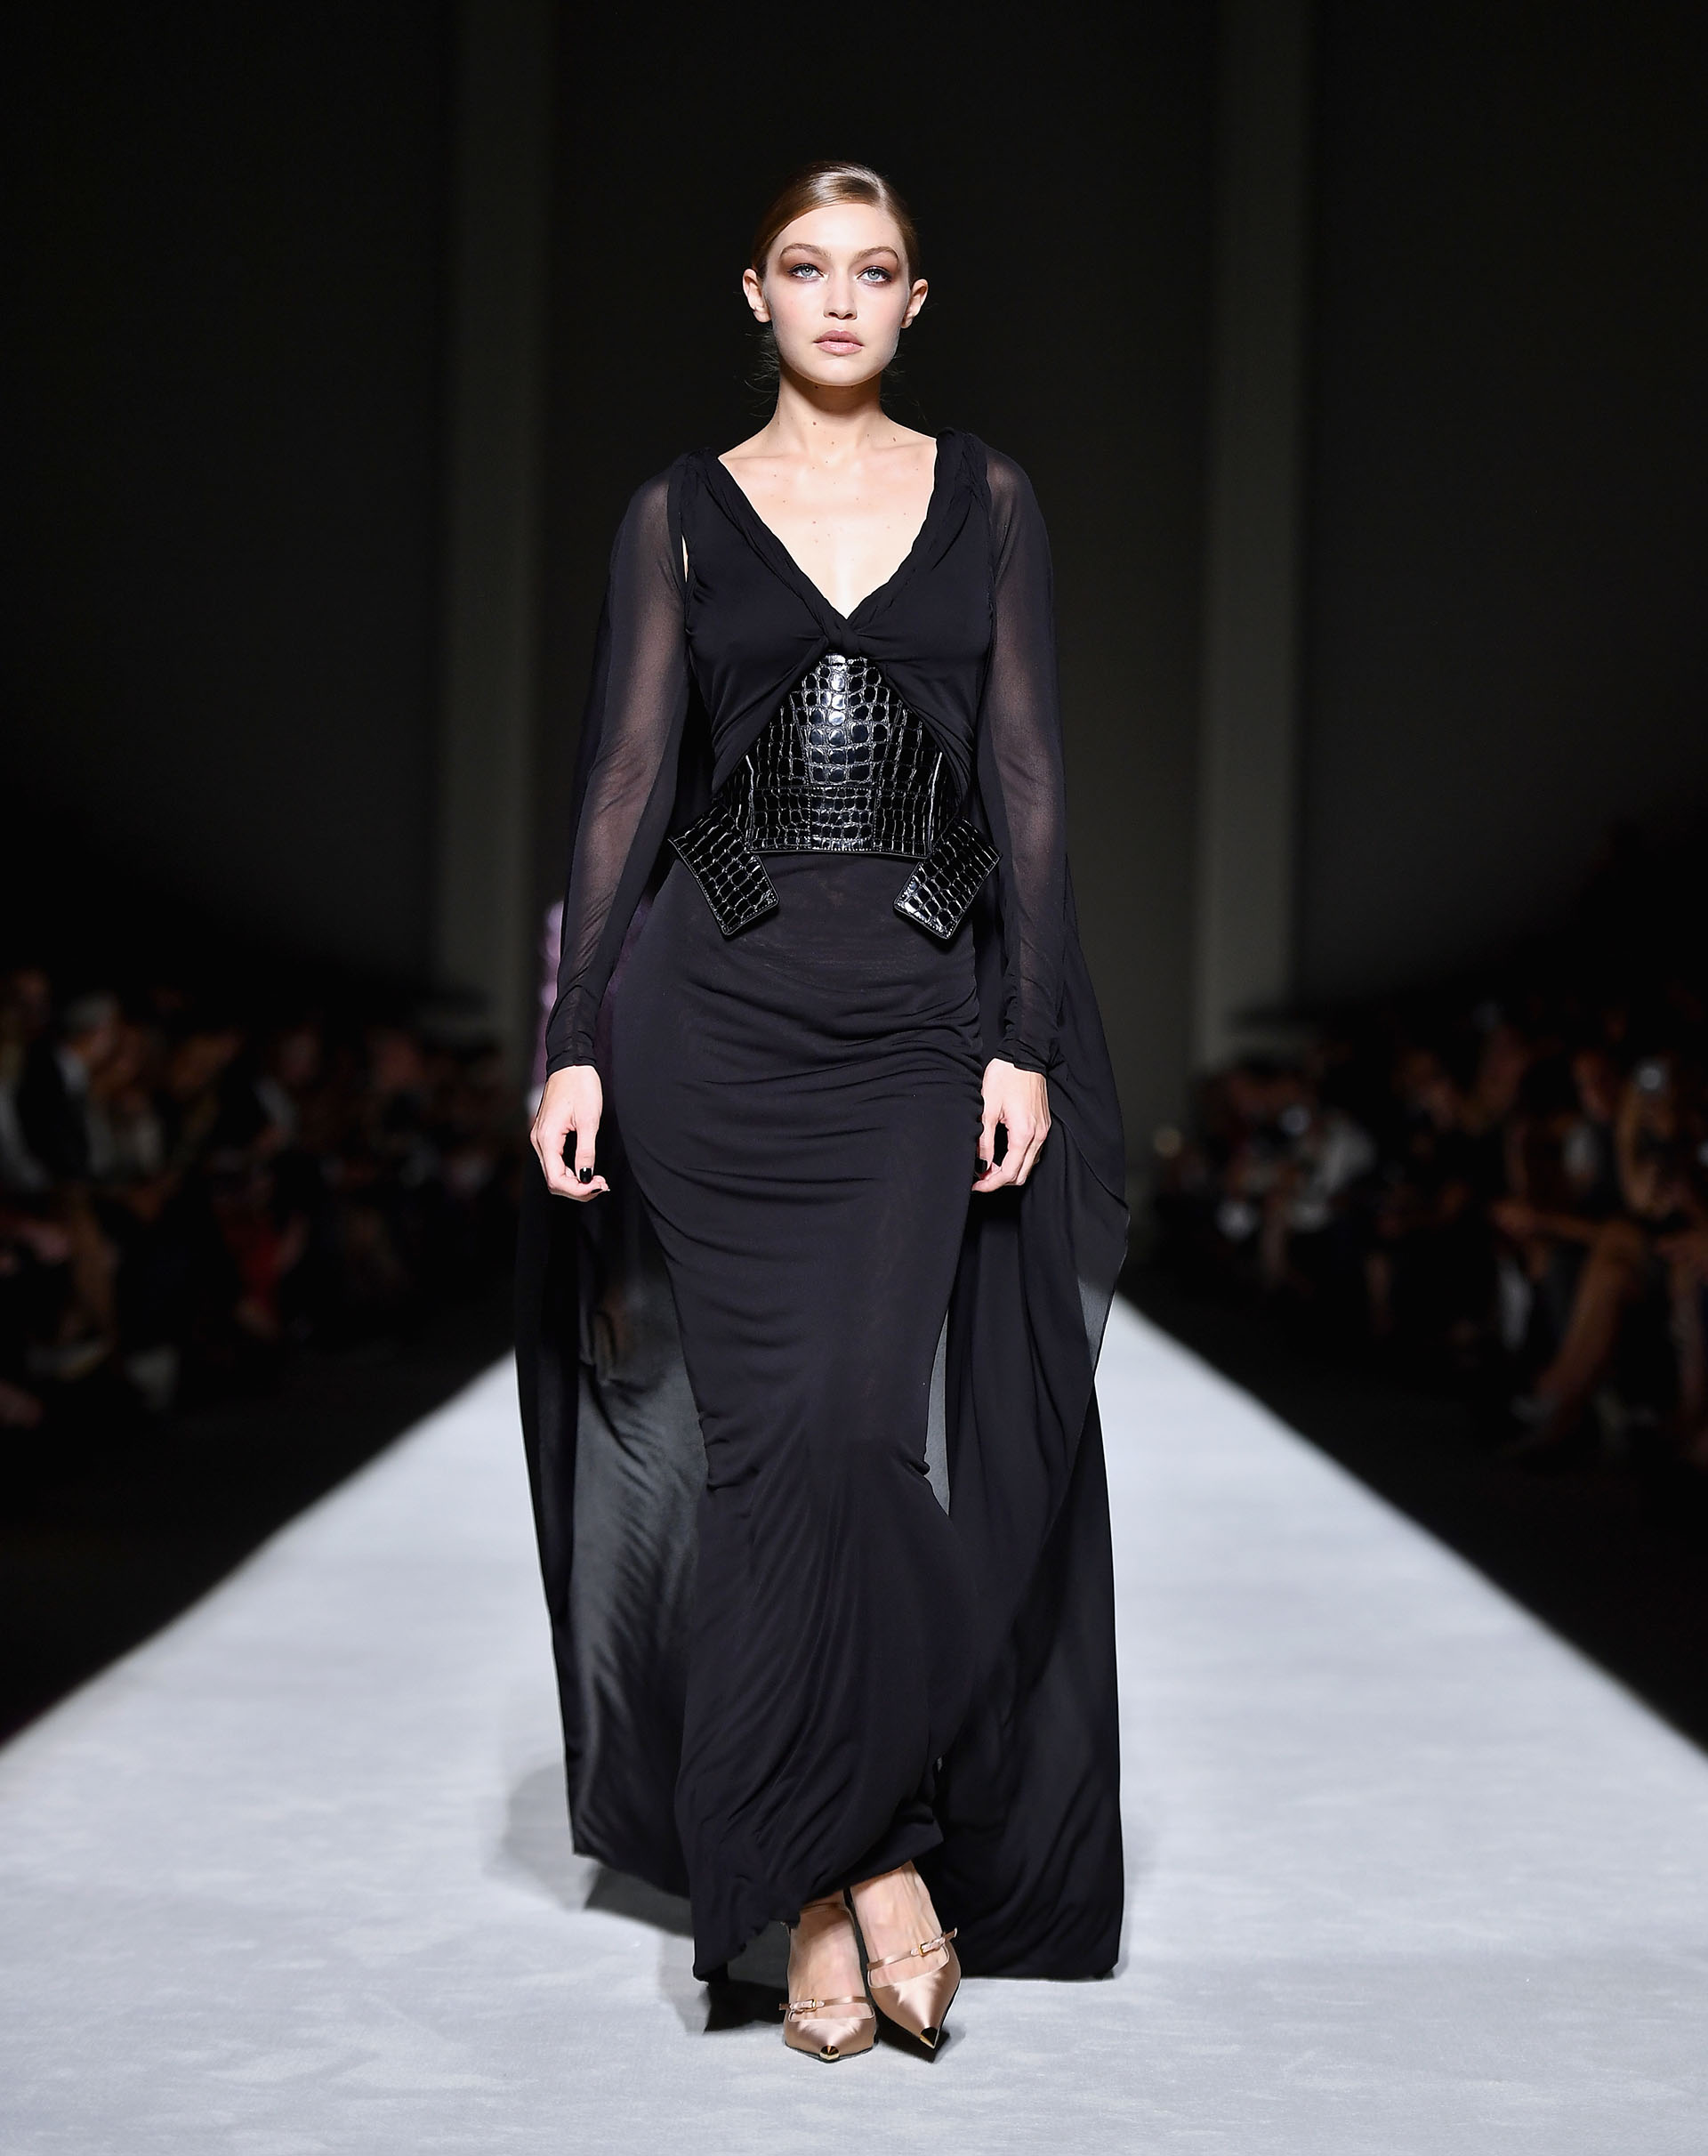 Gigi Hadid enfudada en vestido negro con transparencias (AFP PHOTO / Angela Weiss)